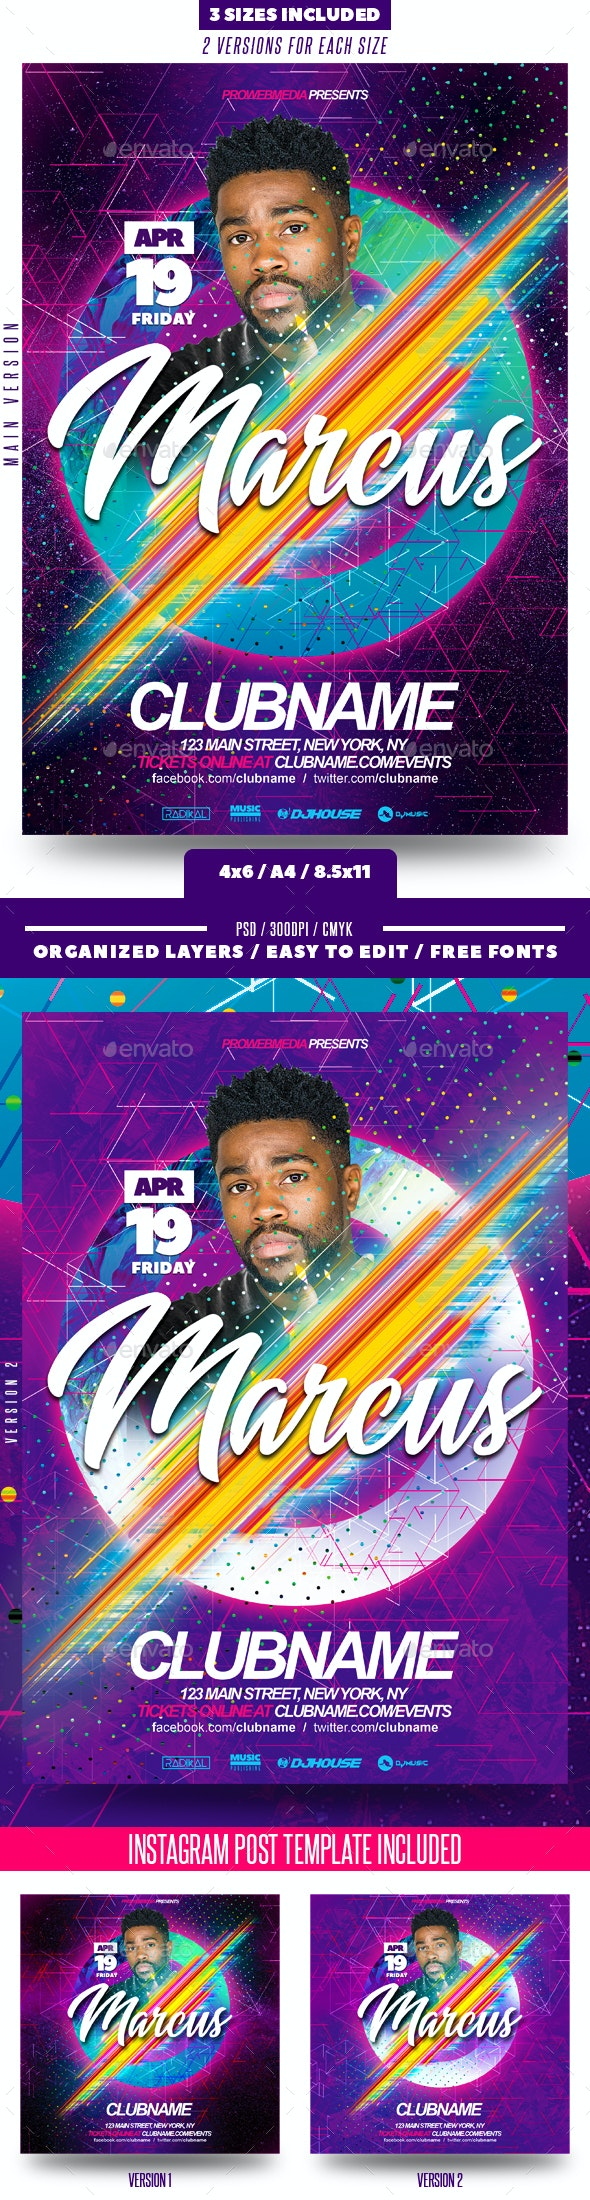 Trap / Future Bass Music Flyer - Clubs & Parties Events